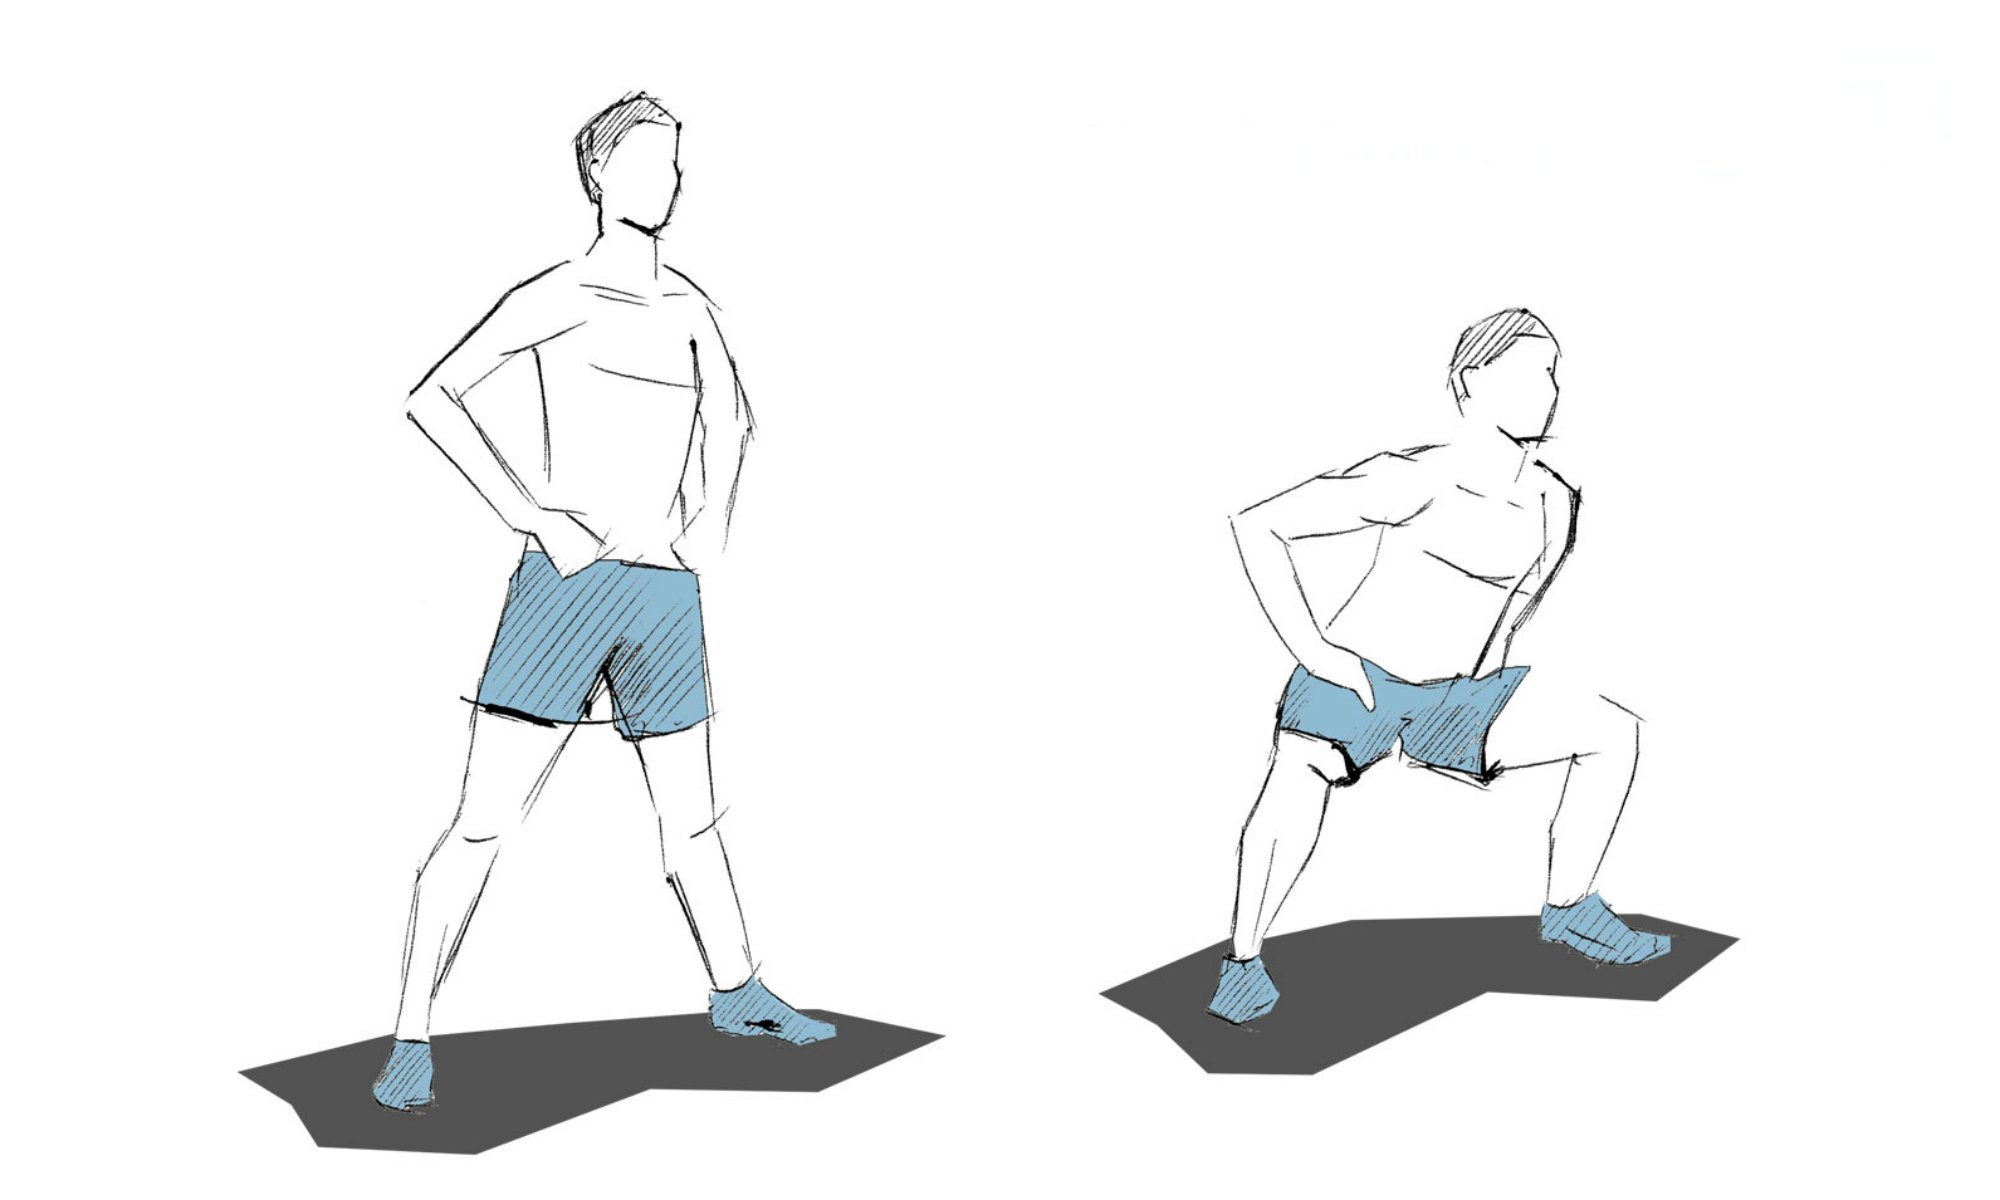 When doing sumo squats, your legs are further apart which requires more thigh muscles.